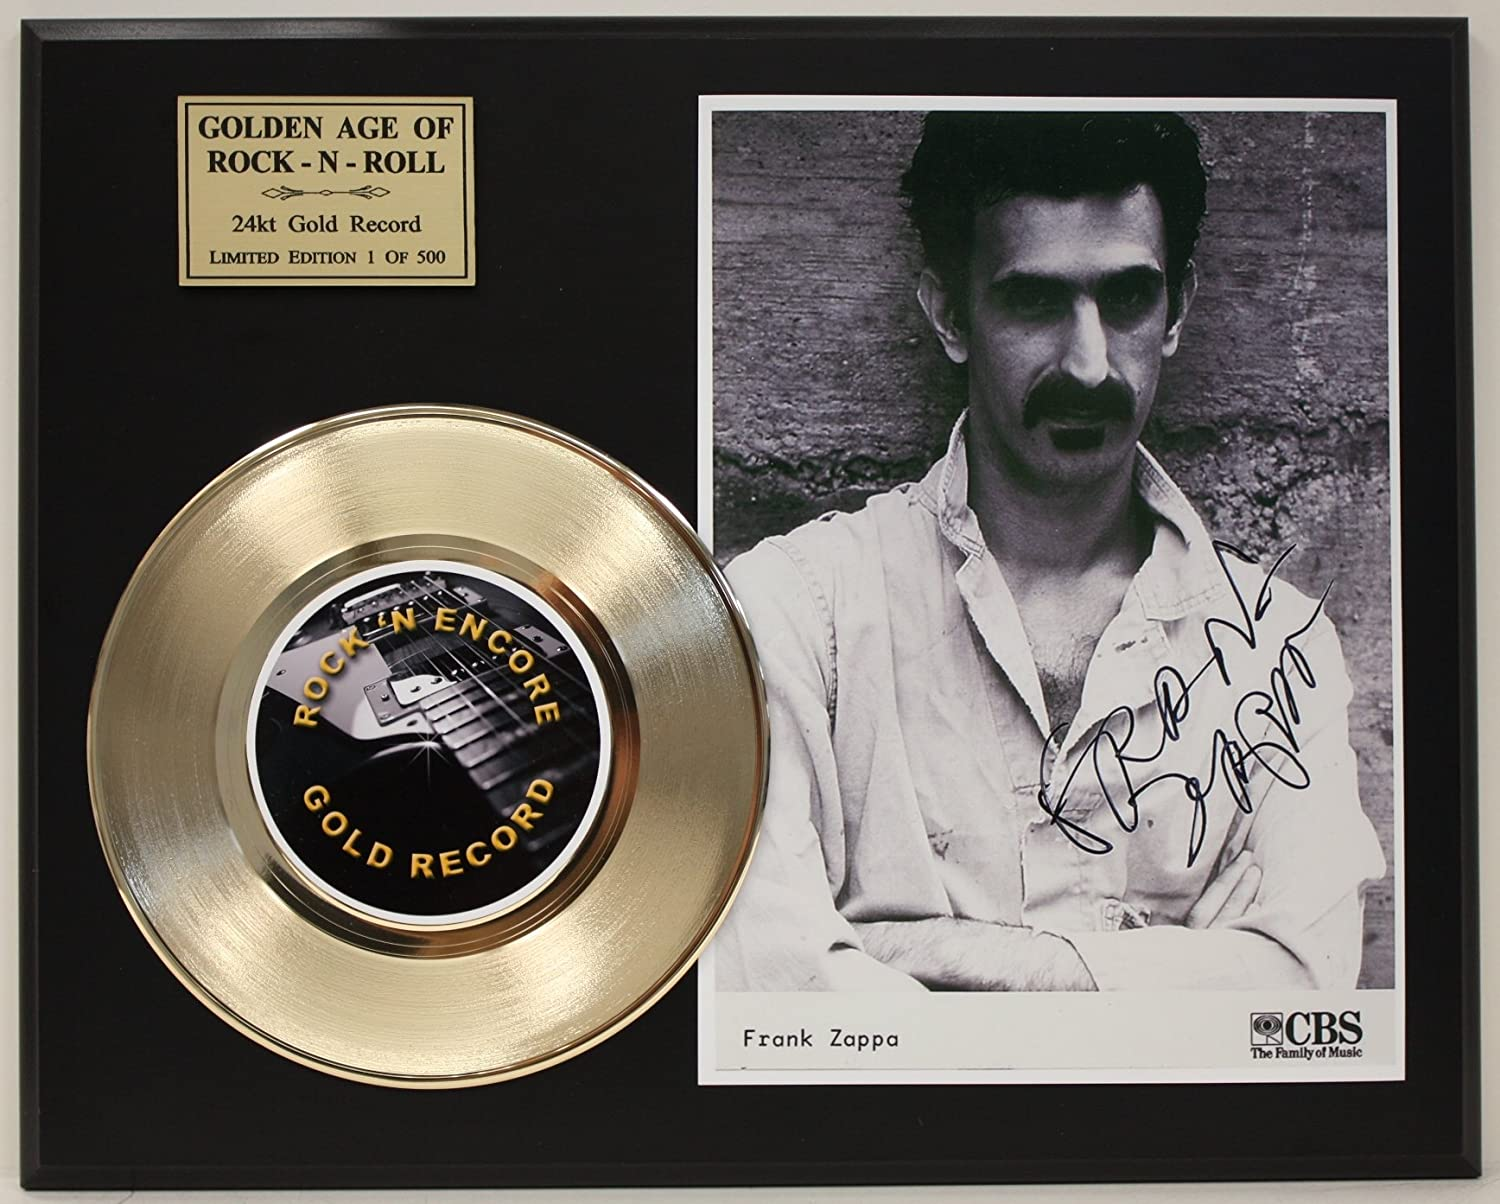 Frank Zappa Gold Record Signature Series LTD Edition Display idt71256 sa35sog1 automotive computer board